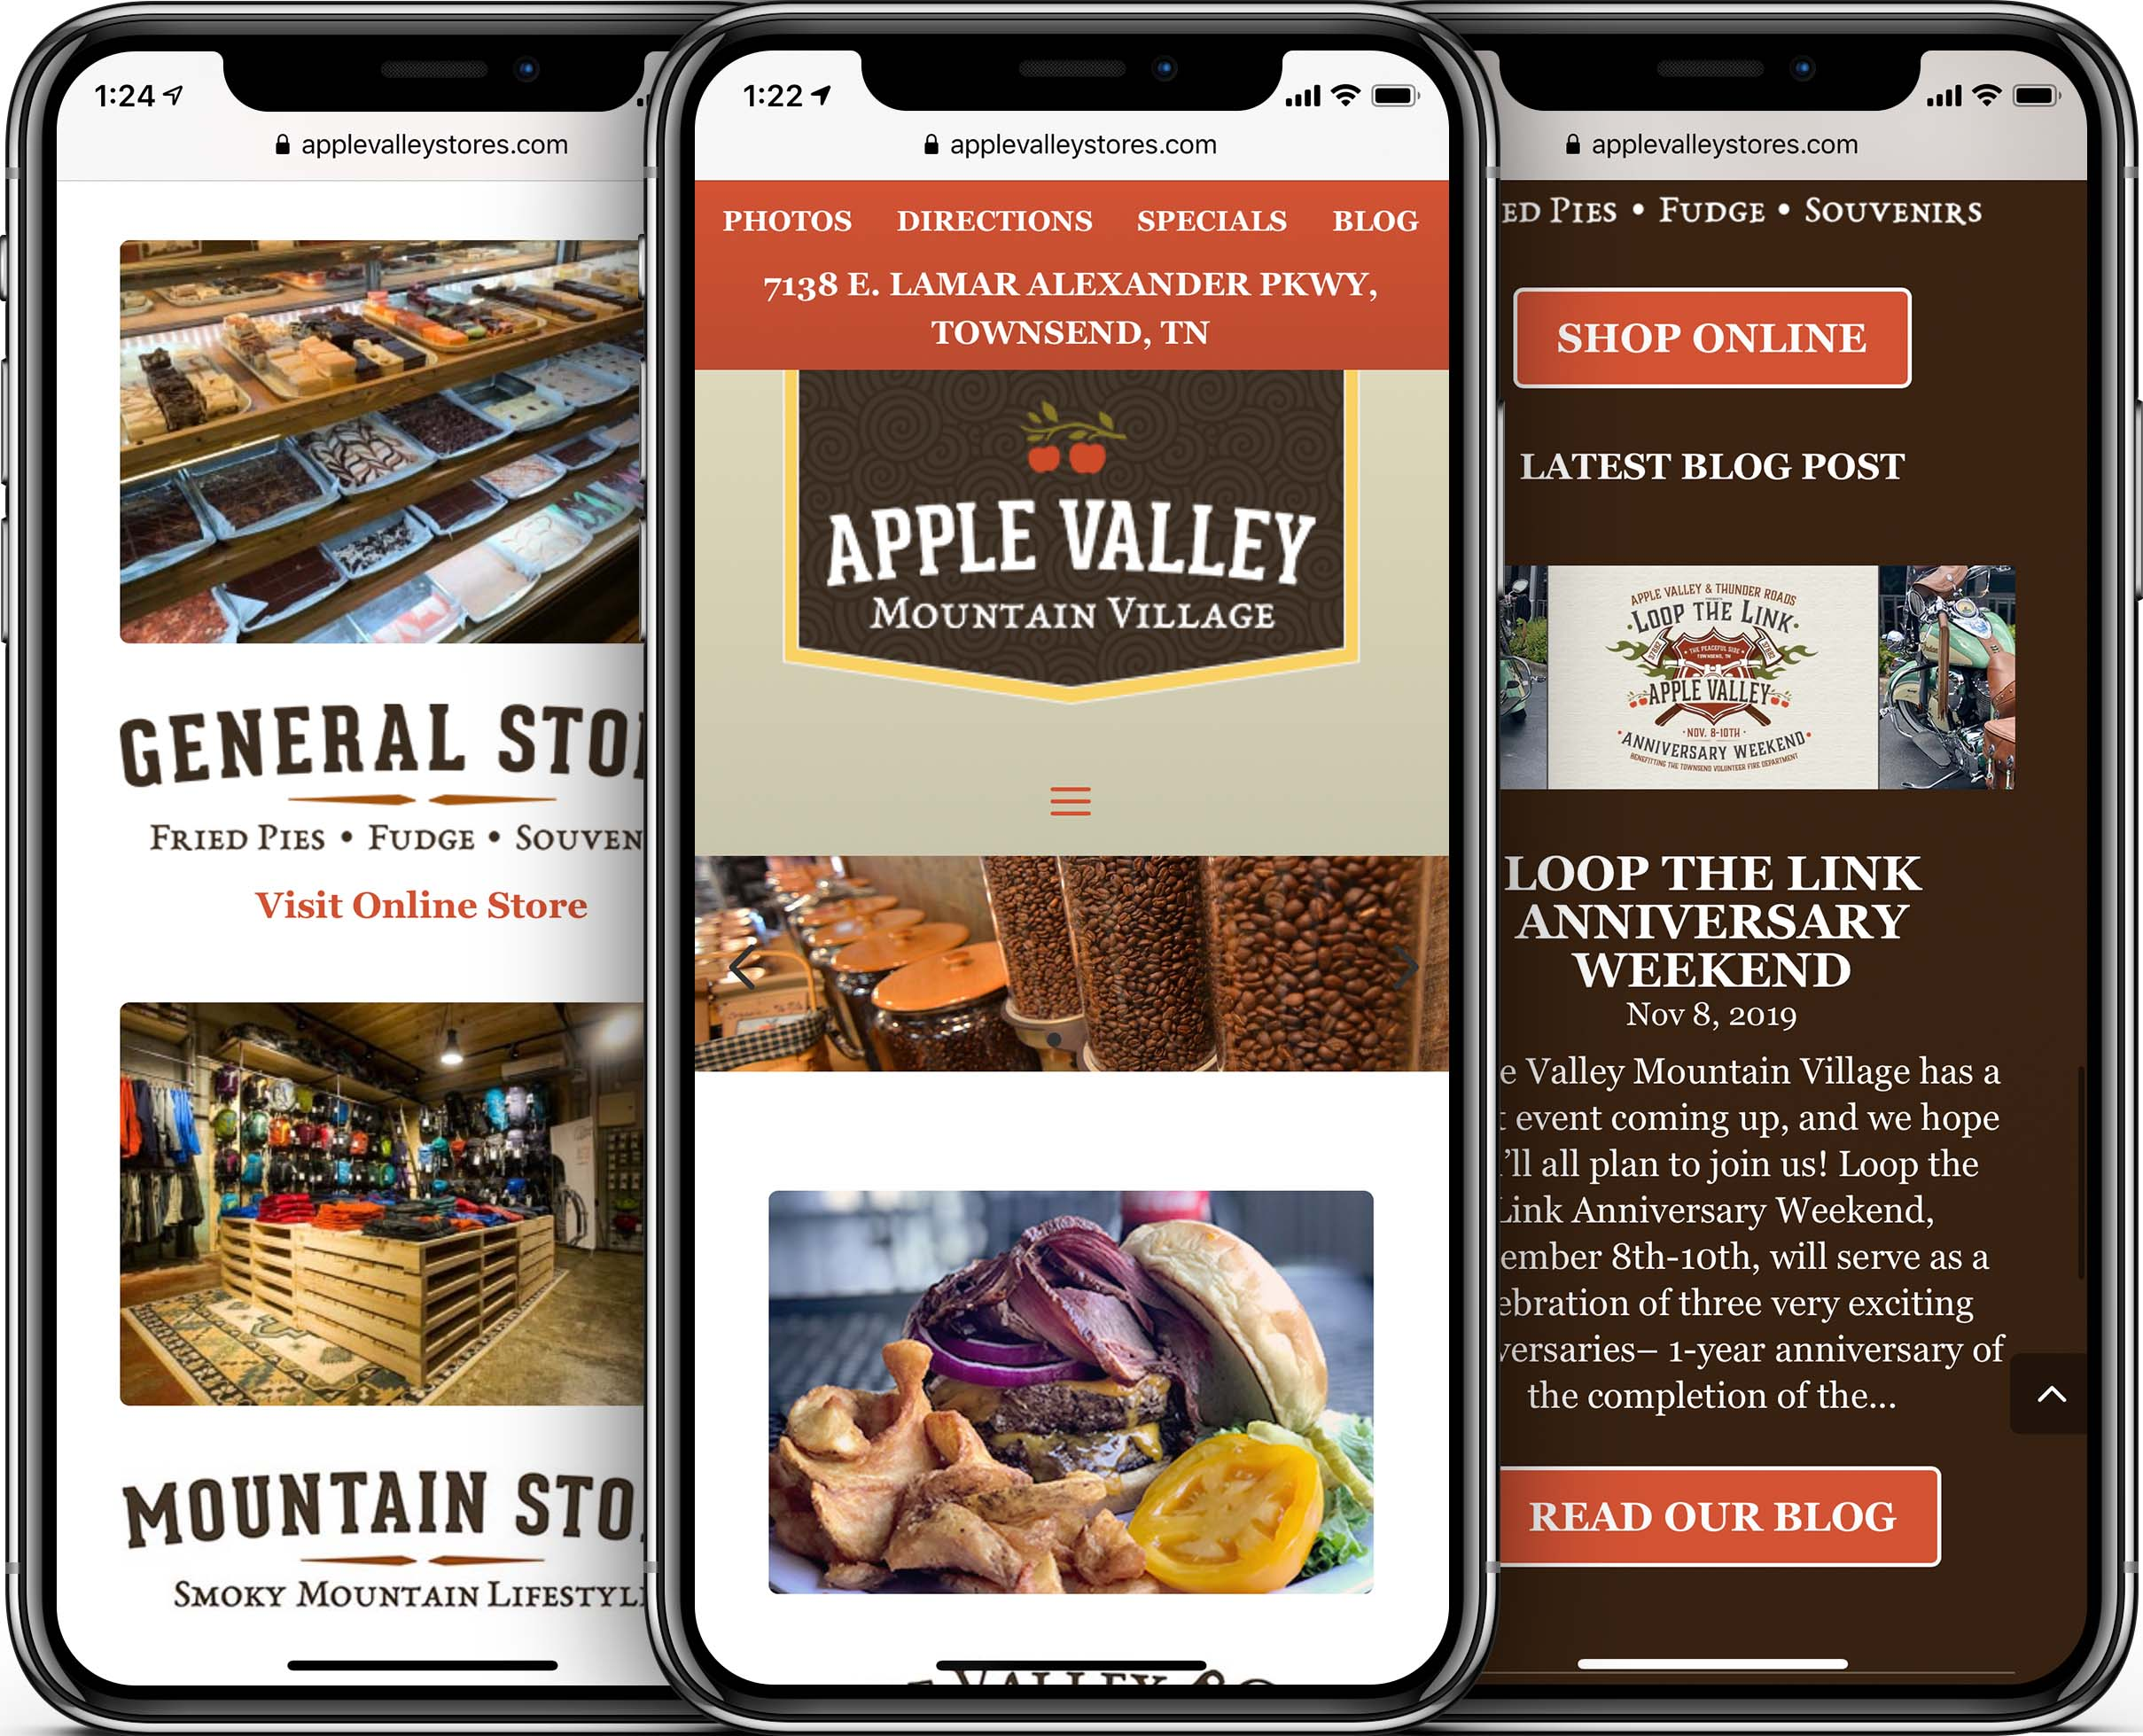 Apple Valley Stores Mobile-Friendly Web Design